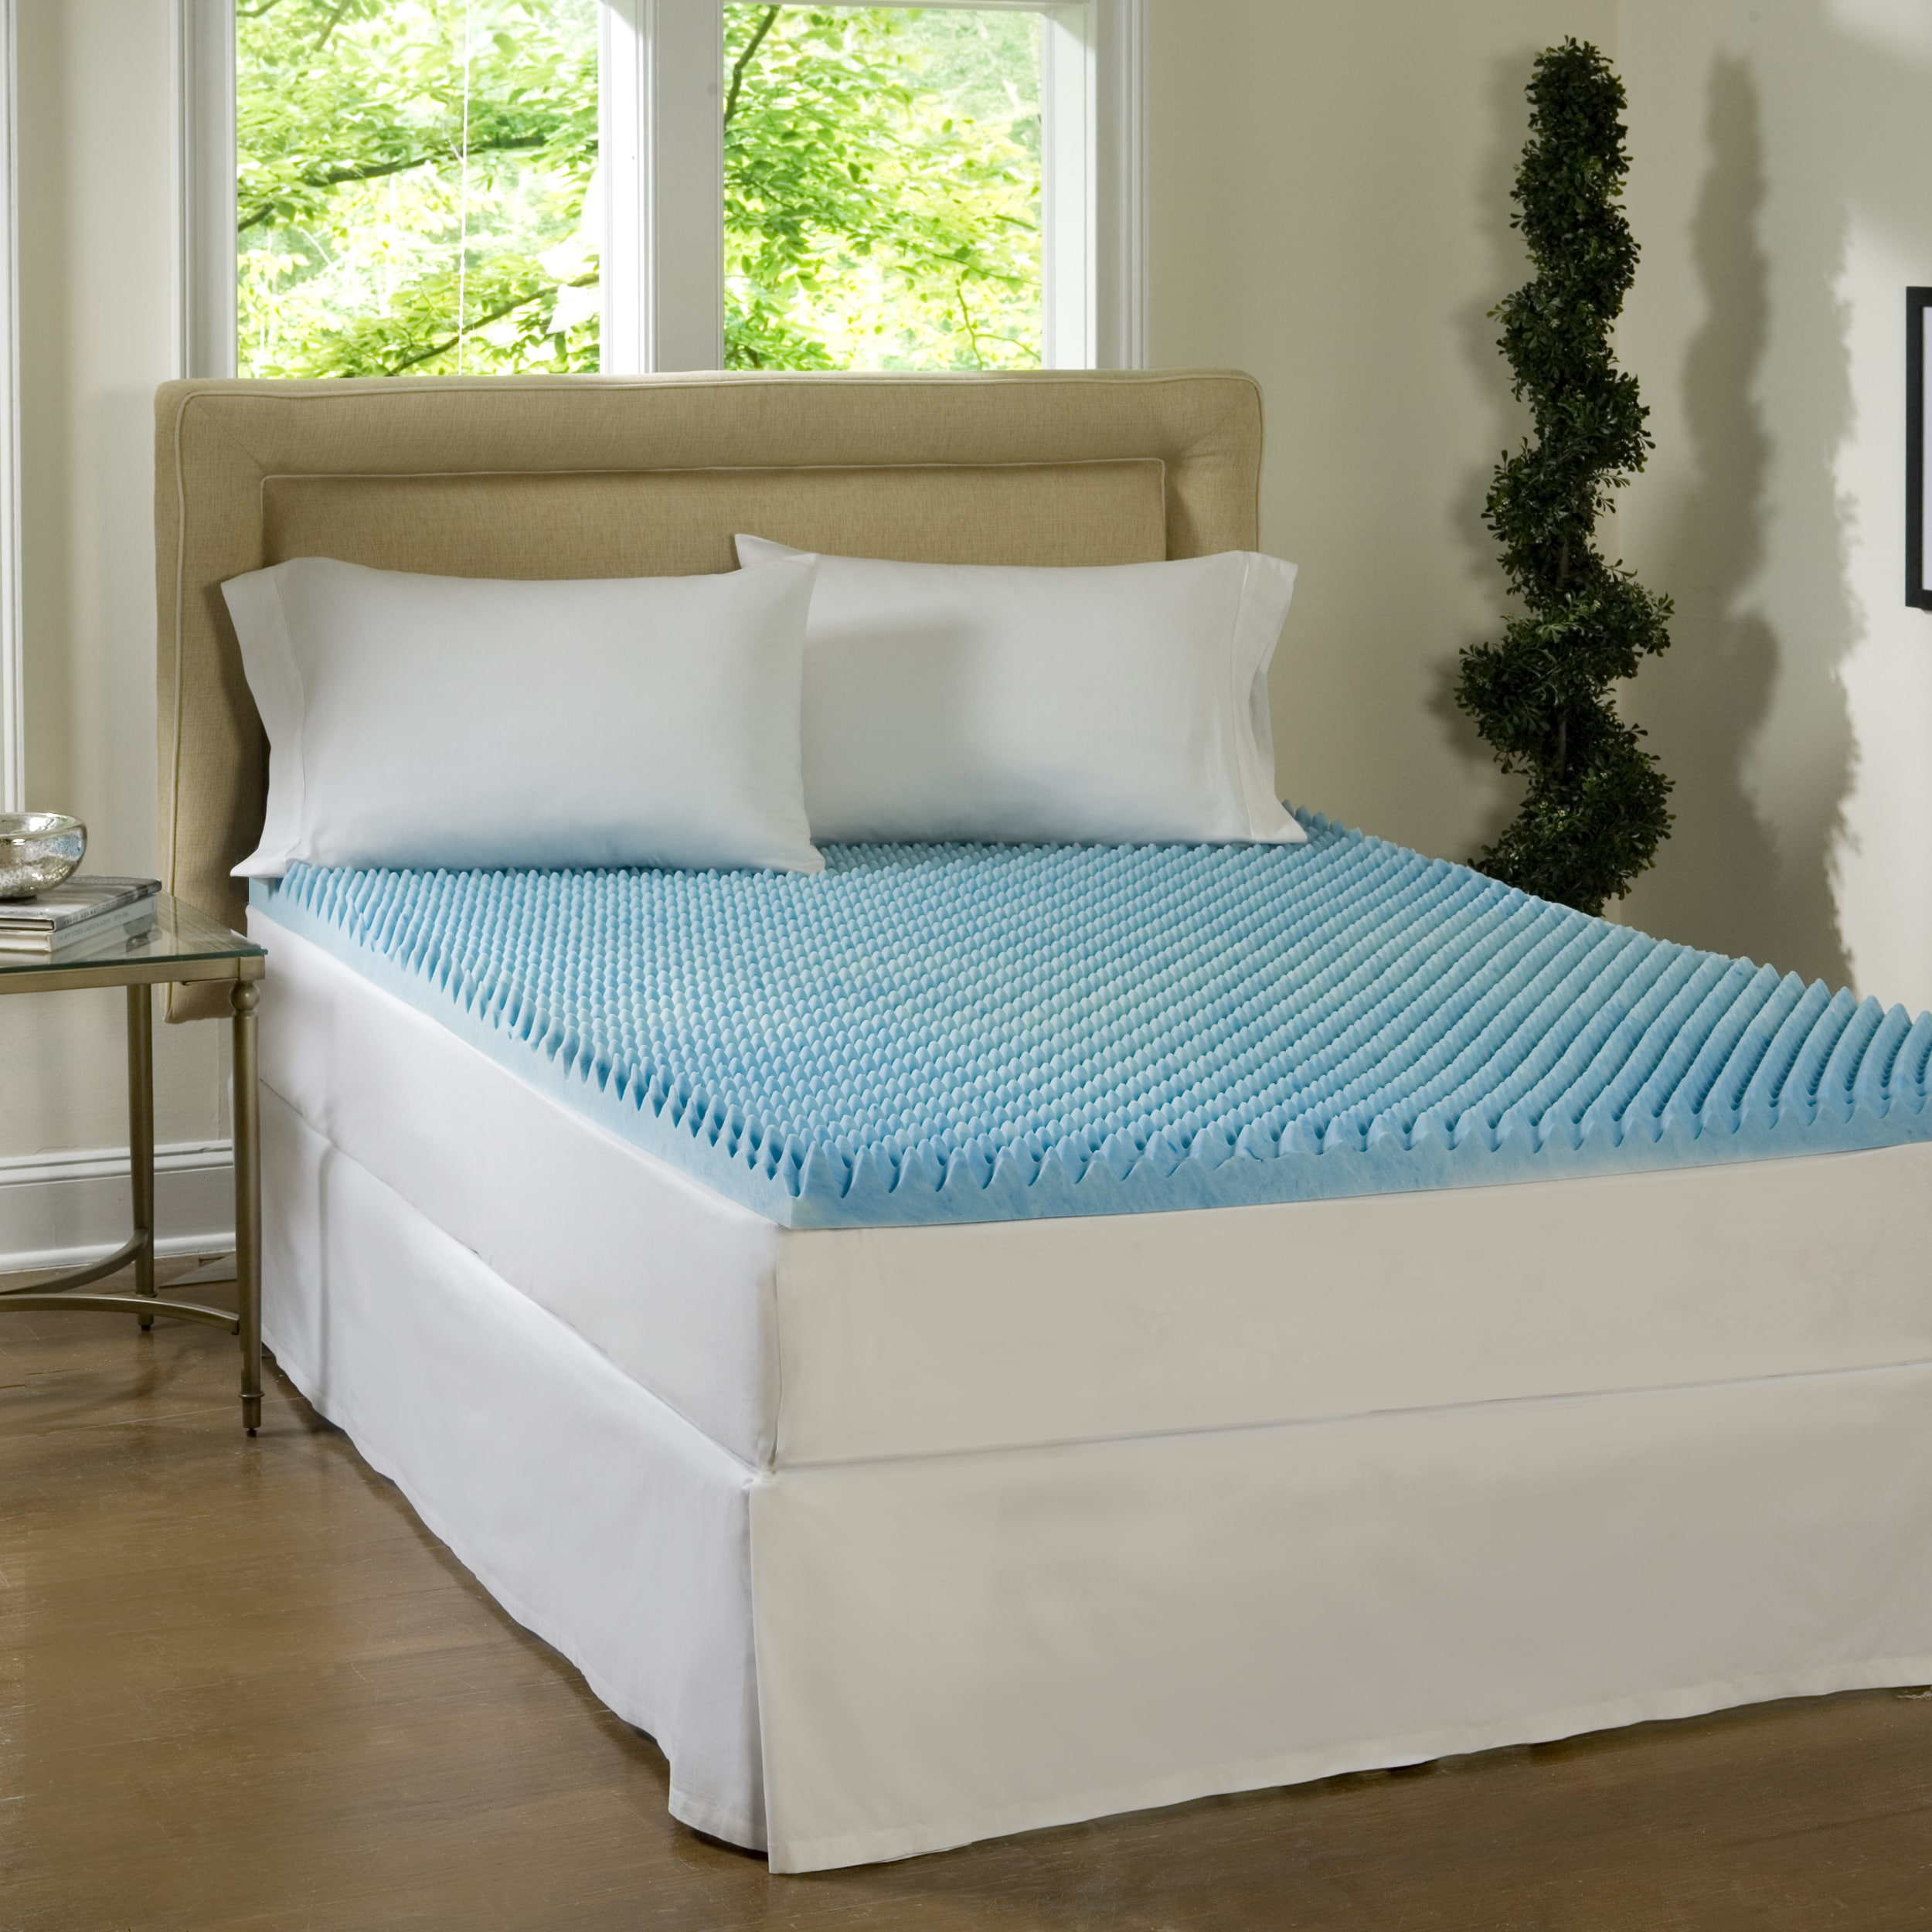 Gel Topper 200x200 Comforpedic Loft From Beautyrest 3 Inch Sculpted Gel Memory Foam Mattress Topper